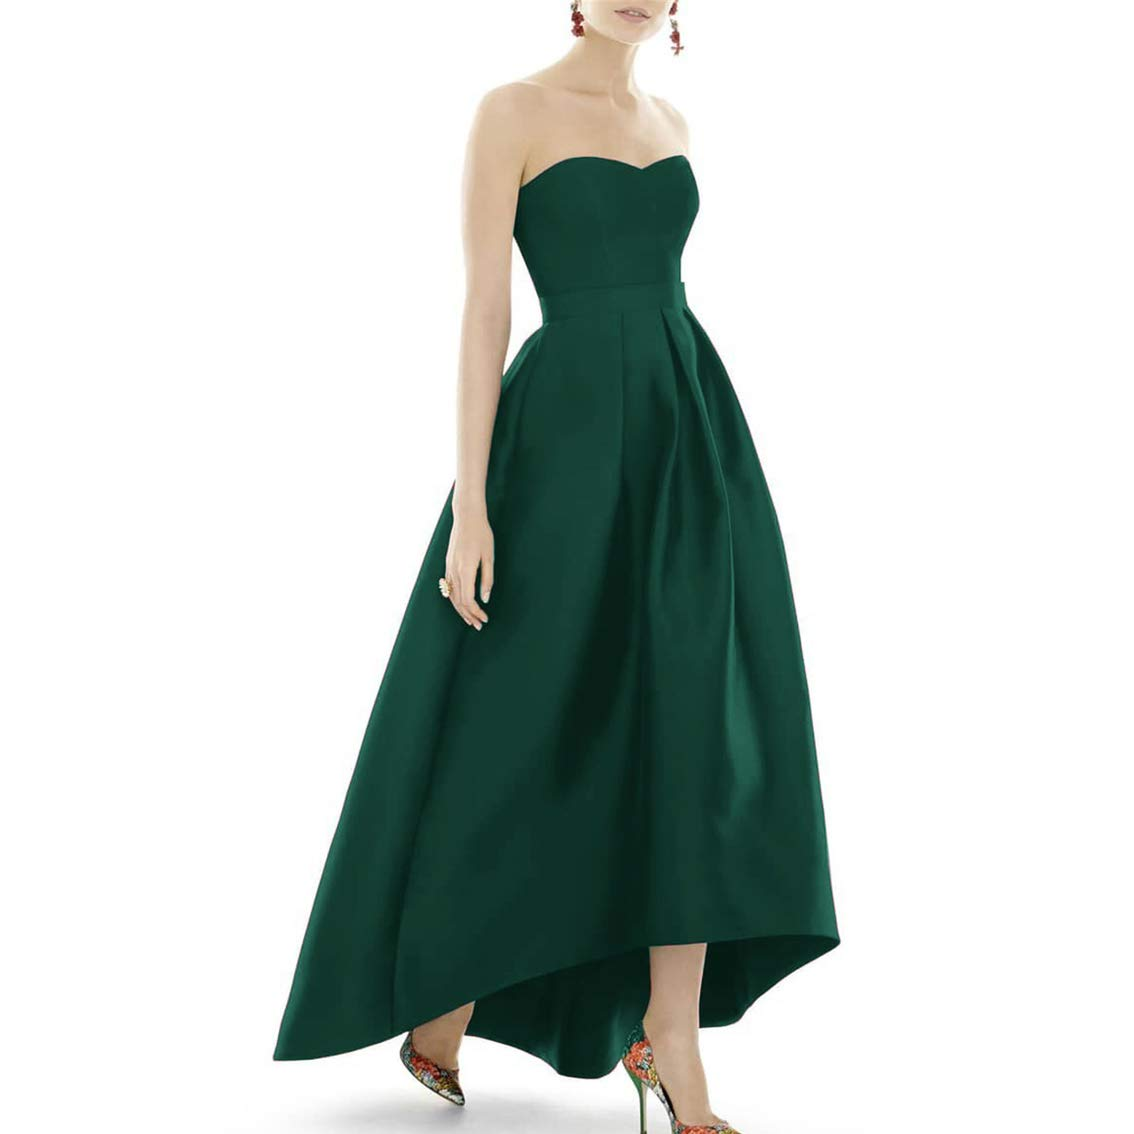 Dark Green XSWPL Women's Strapless High Low Bridesmaid Dresses Sweetheart Satin Prom Gowns ALine